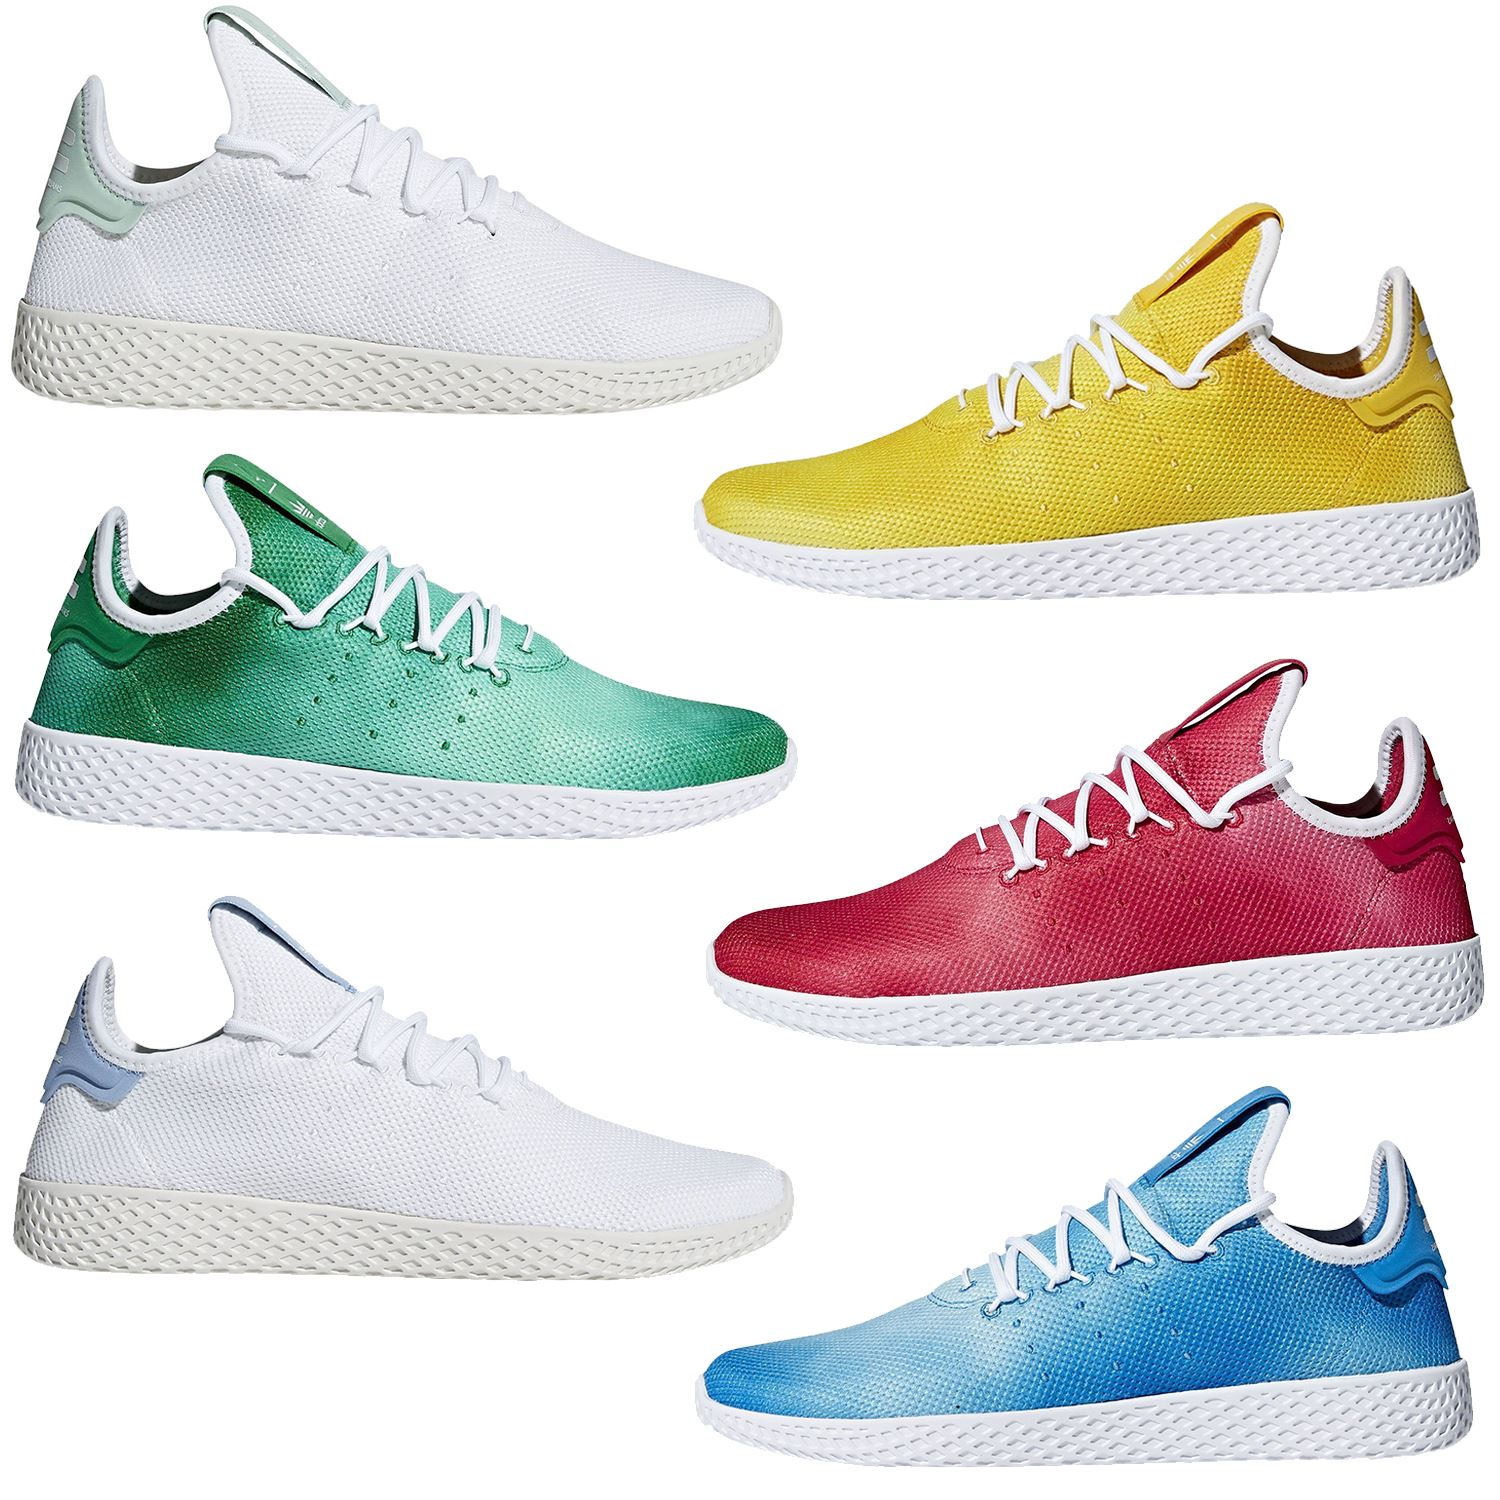 new style 821a4 71e3f Details about adidas ORIGINALS PHARRELL WILLIAMS HU TENNIS SHOES TRAINERS  SNEAKERS MENS